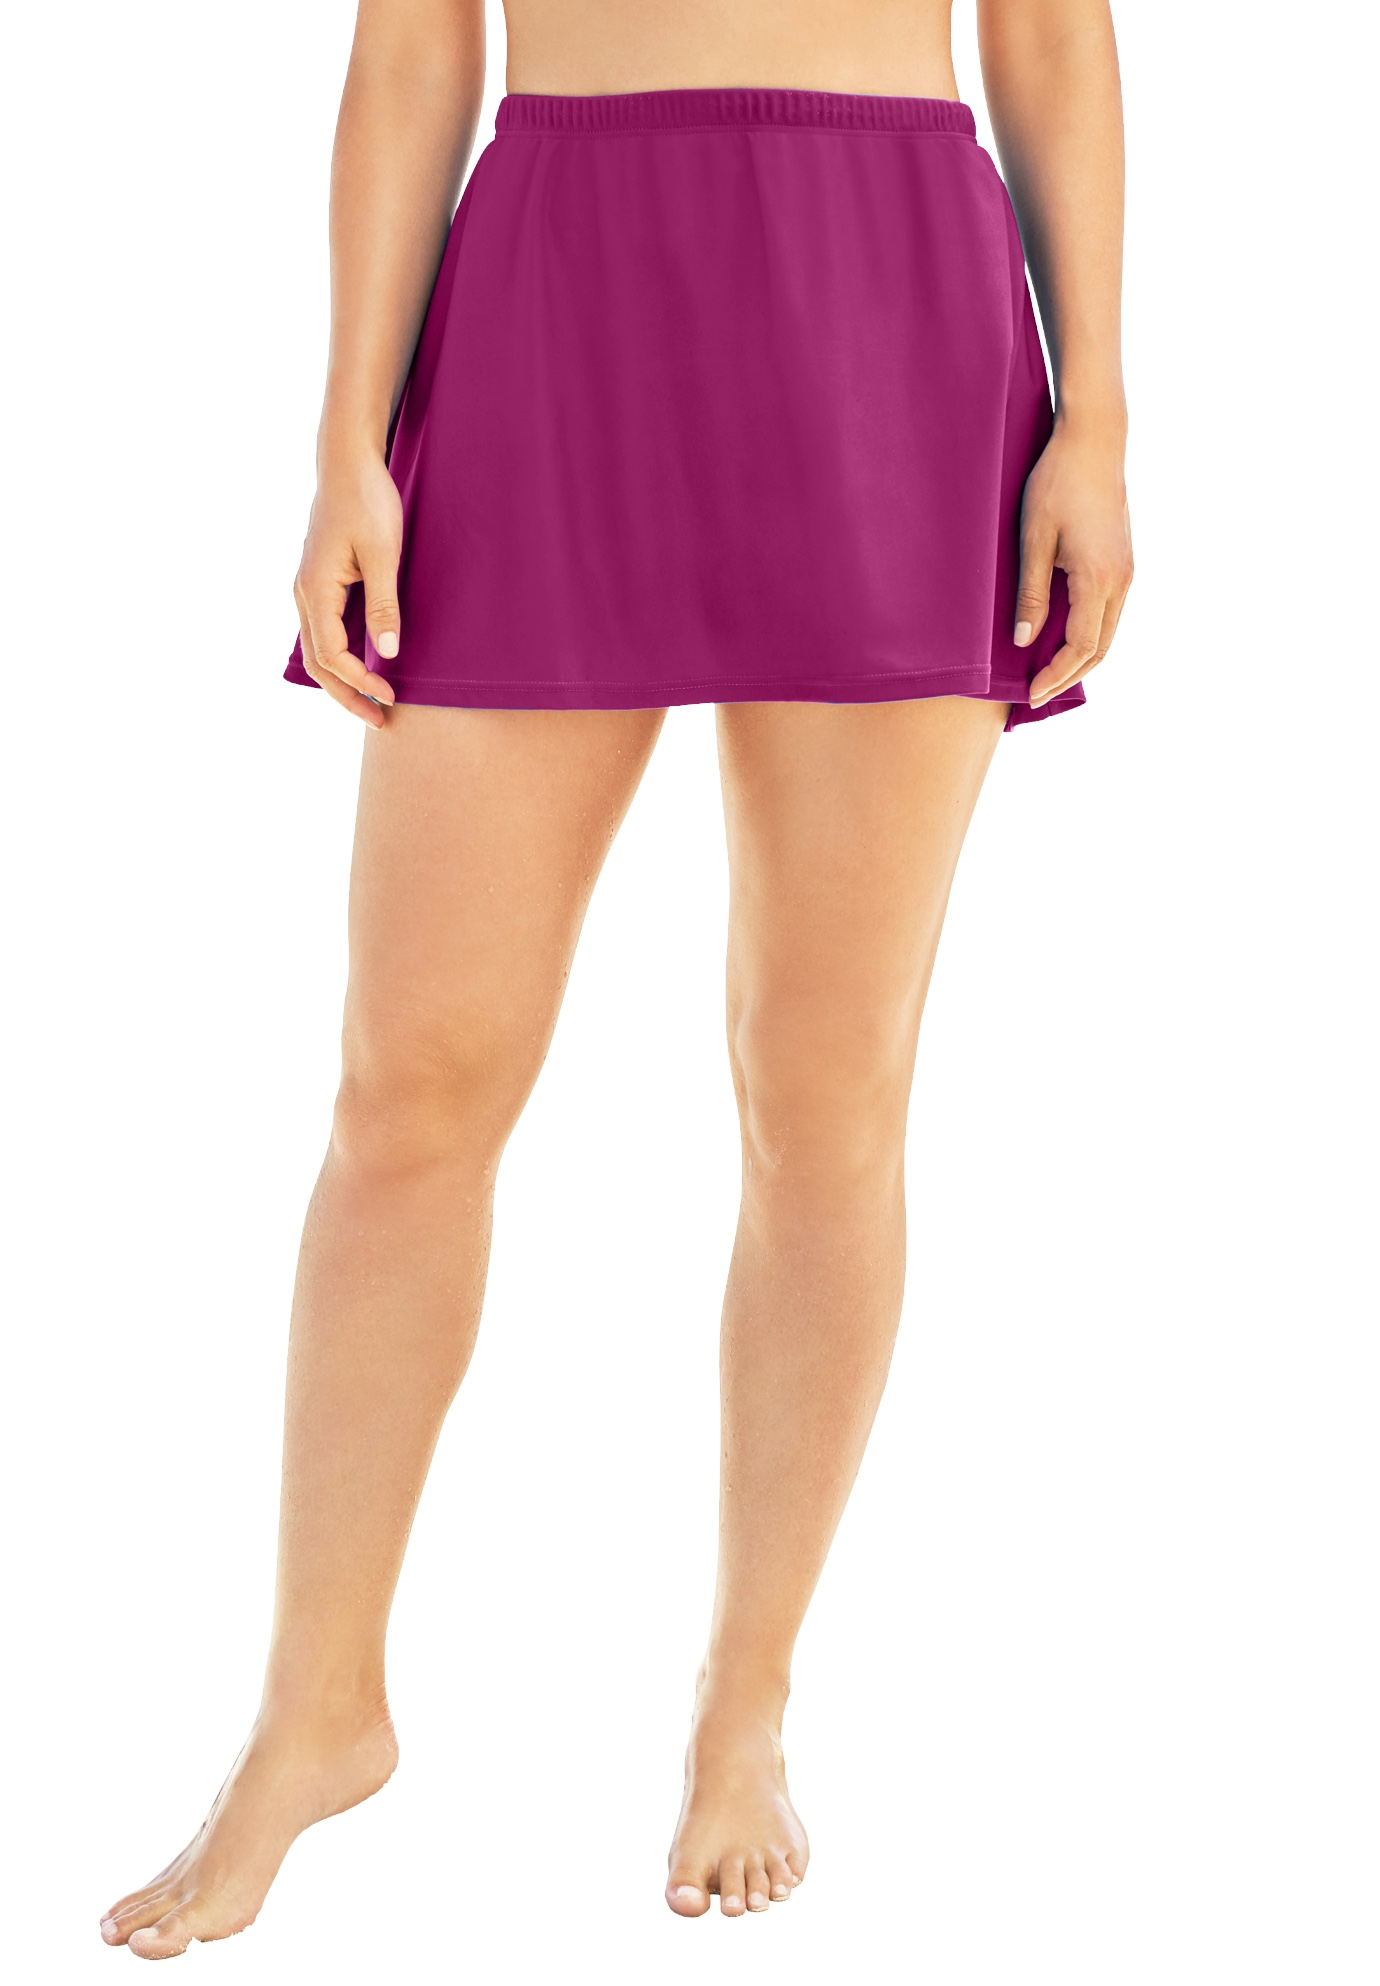 Plus Size Women's A-Line Swim Skirt with Built-In Brief by Swim 365 in Fuchsia